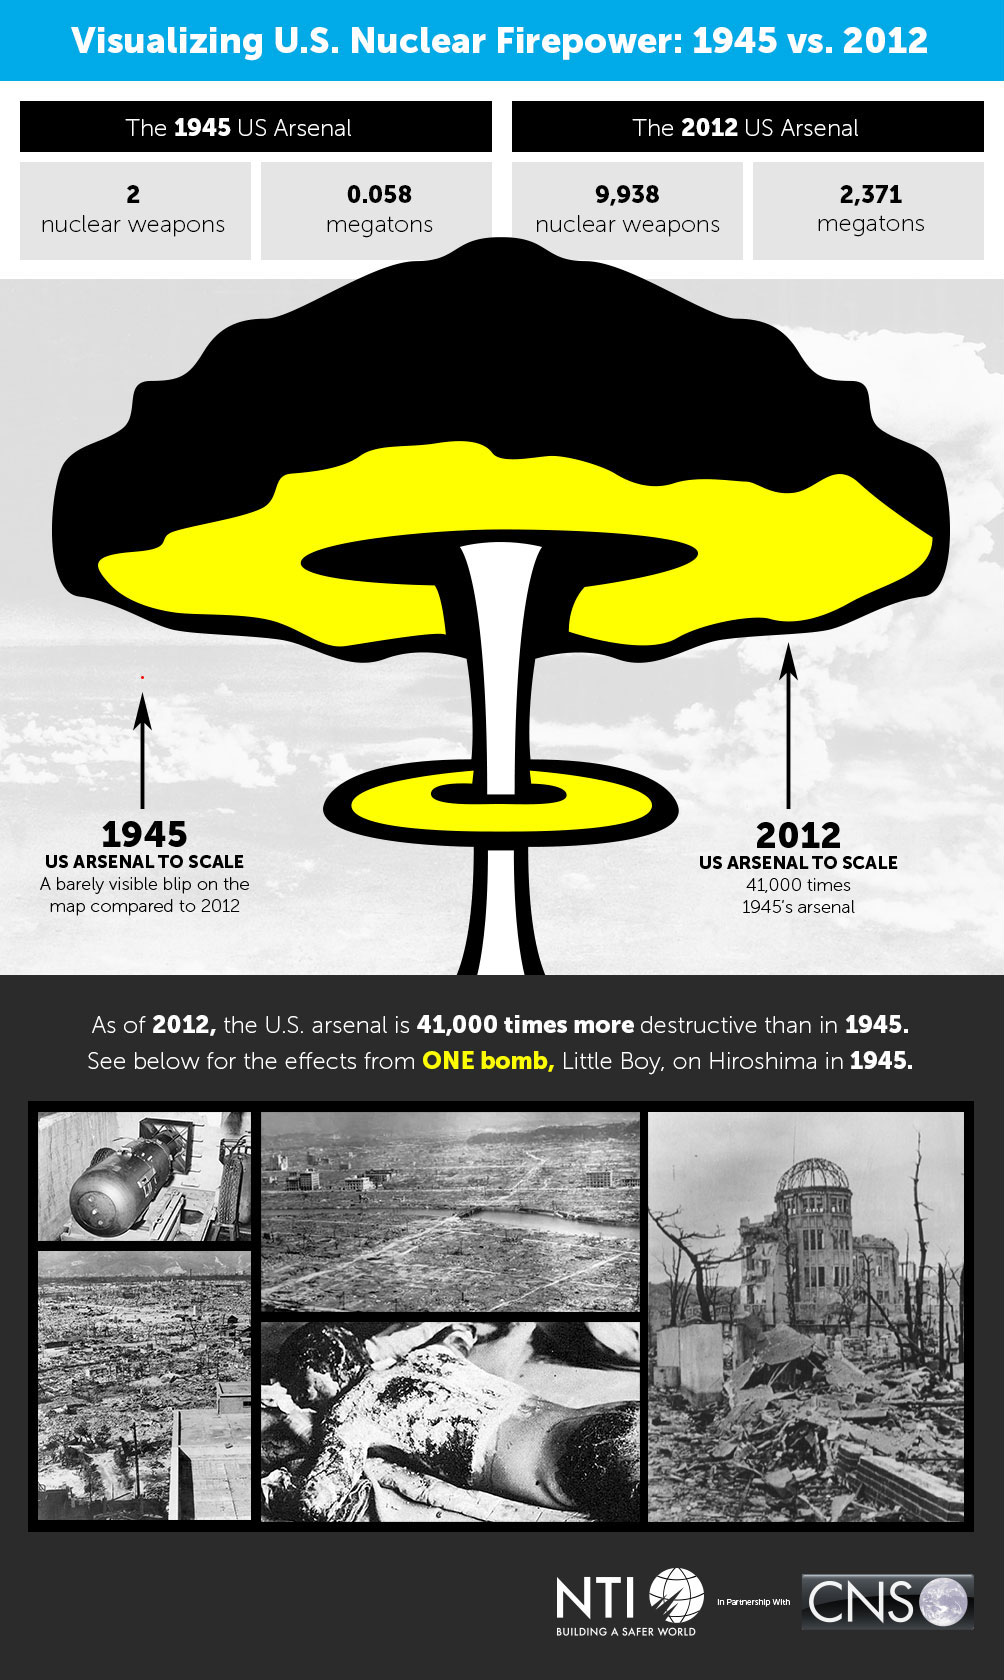 visualization of U.S. Nuclear Firepower: 1945 vs. 2012